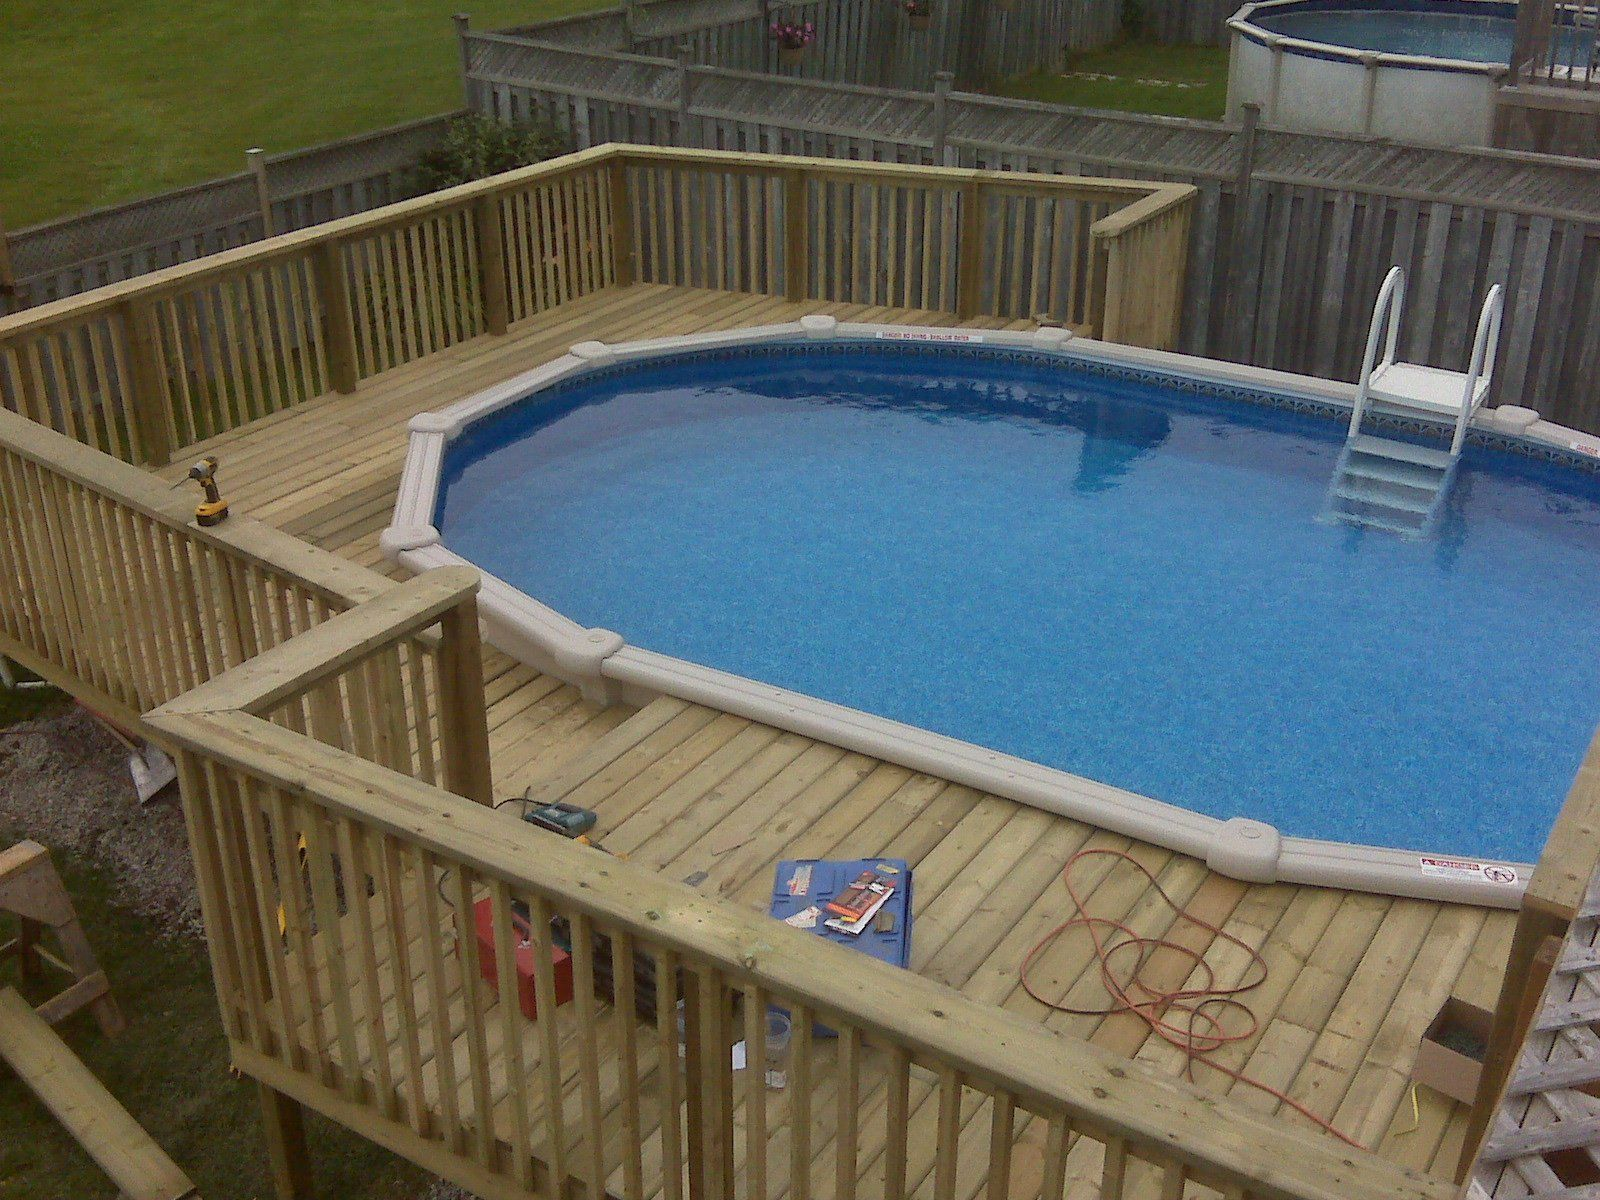 Swimming Pool Decks Patios Pinterest Backyard Renovations Ground Pools And Decking